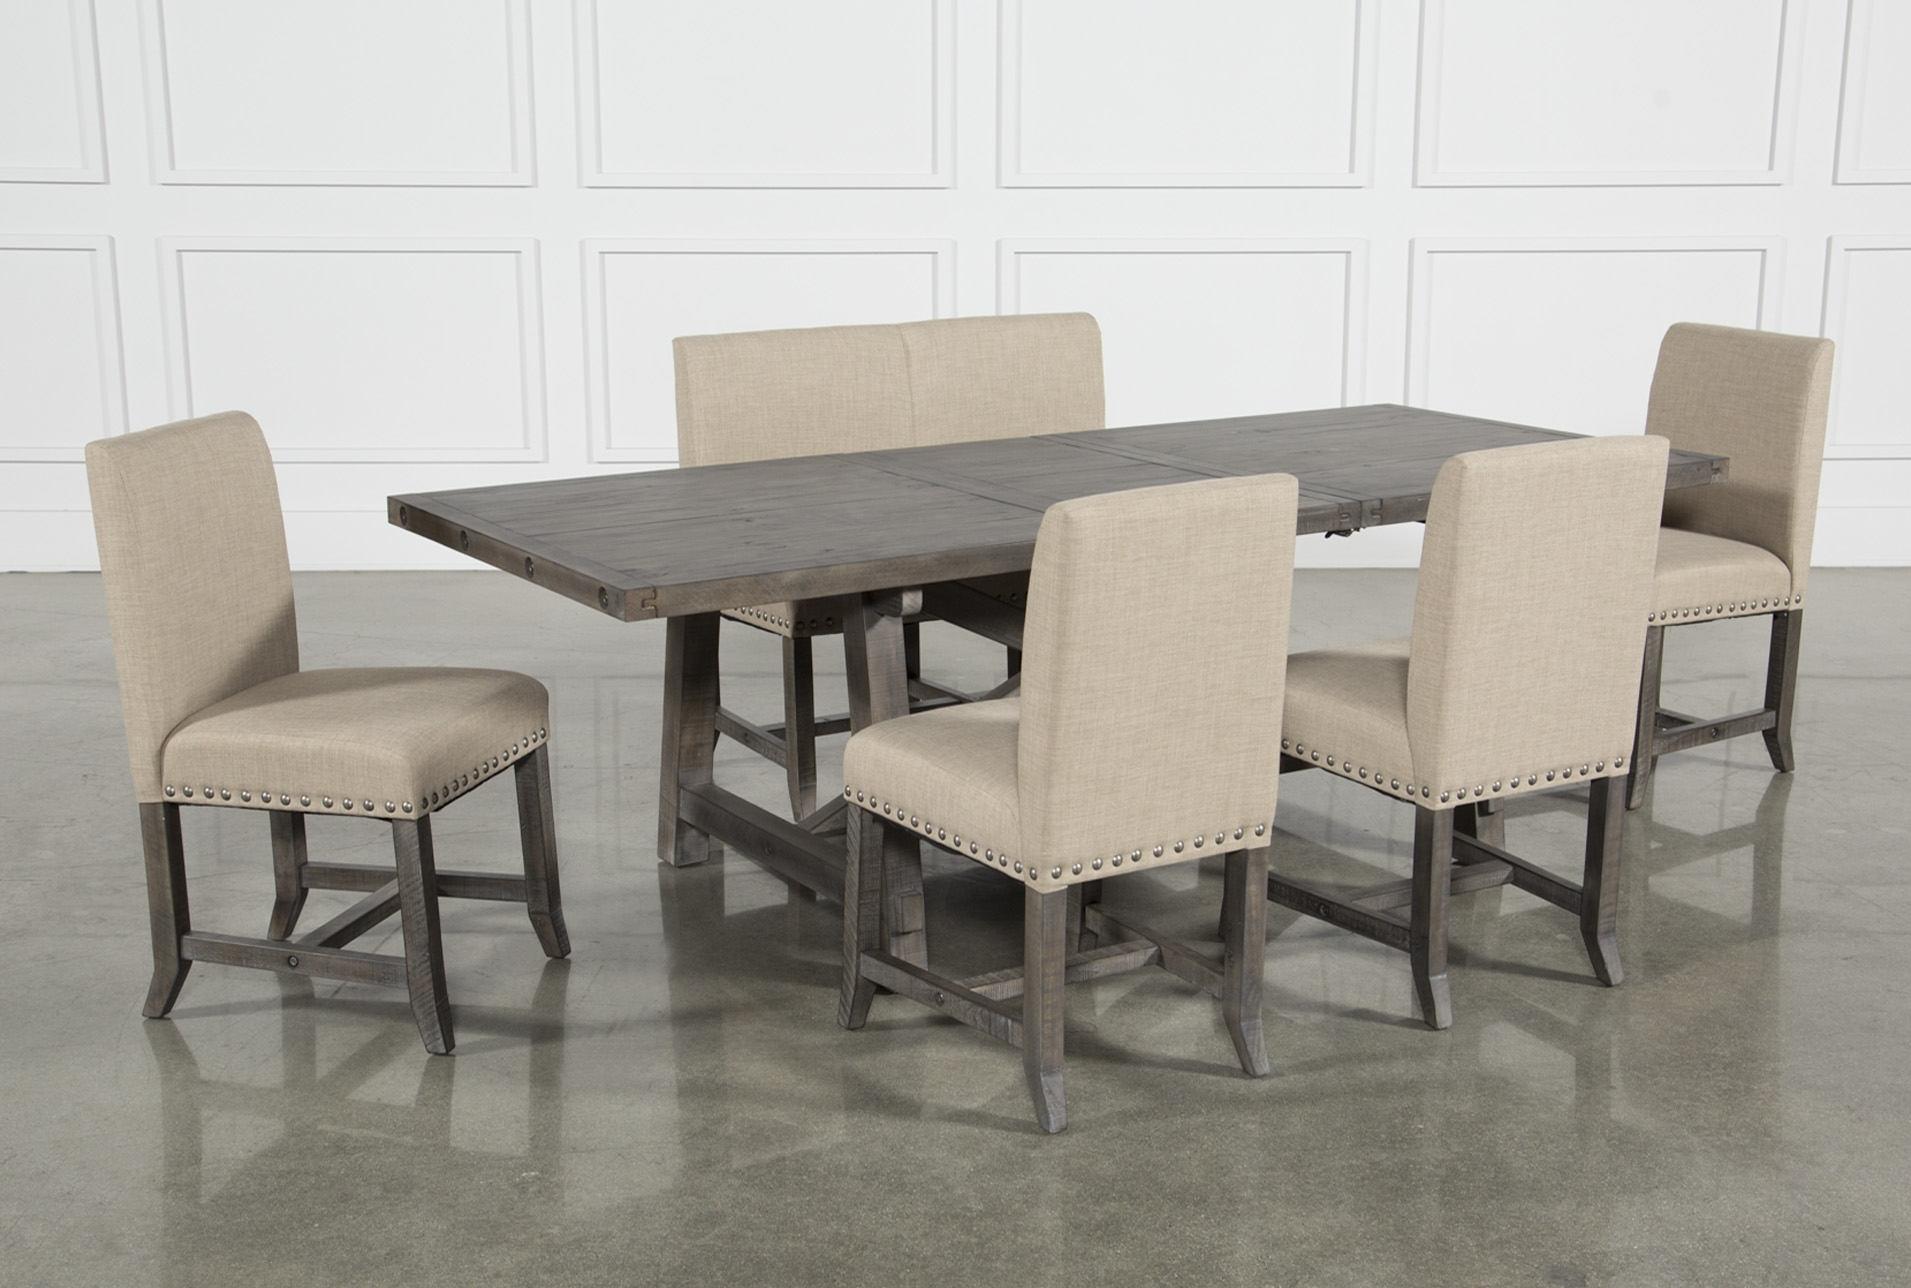 Jaxon Grey 6 Piece Rectangle Extension Dining Set W/bench & Uph Inside Most Recently Released Jaxon Grey 6 Piece Rectangle Extension Dining Sets With Bench & Uph Chairs (Image 10 of 20)